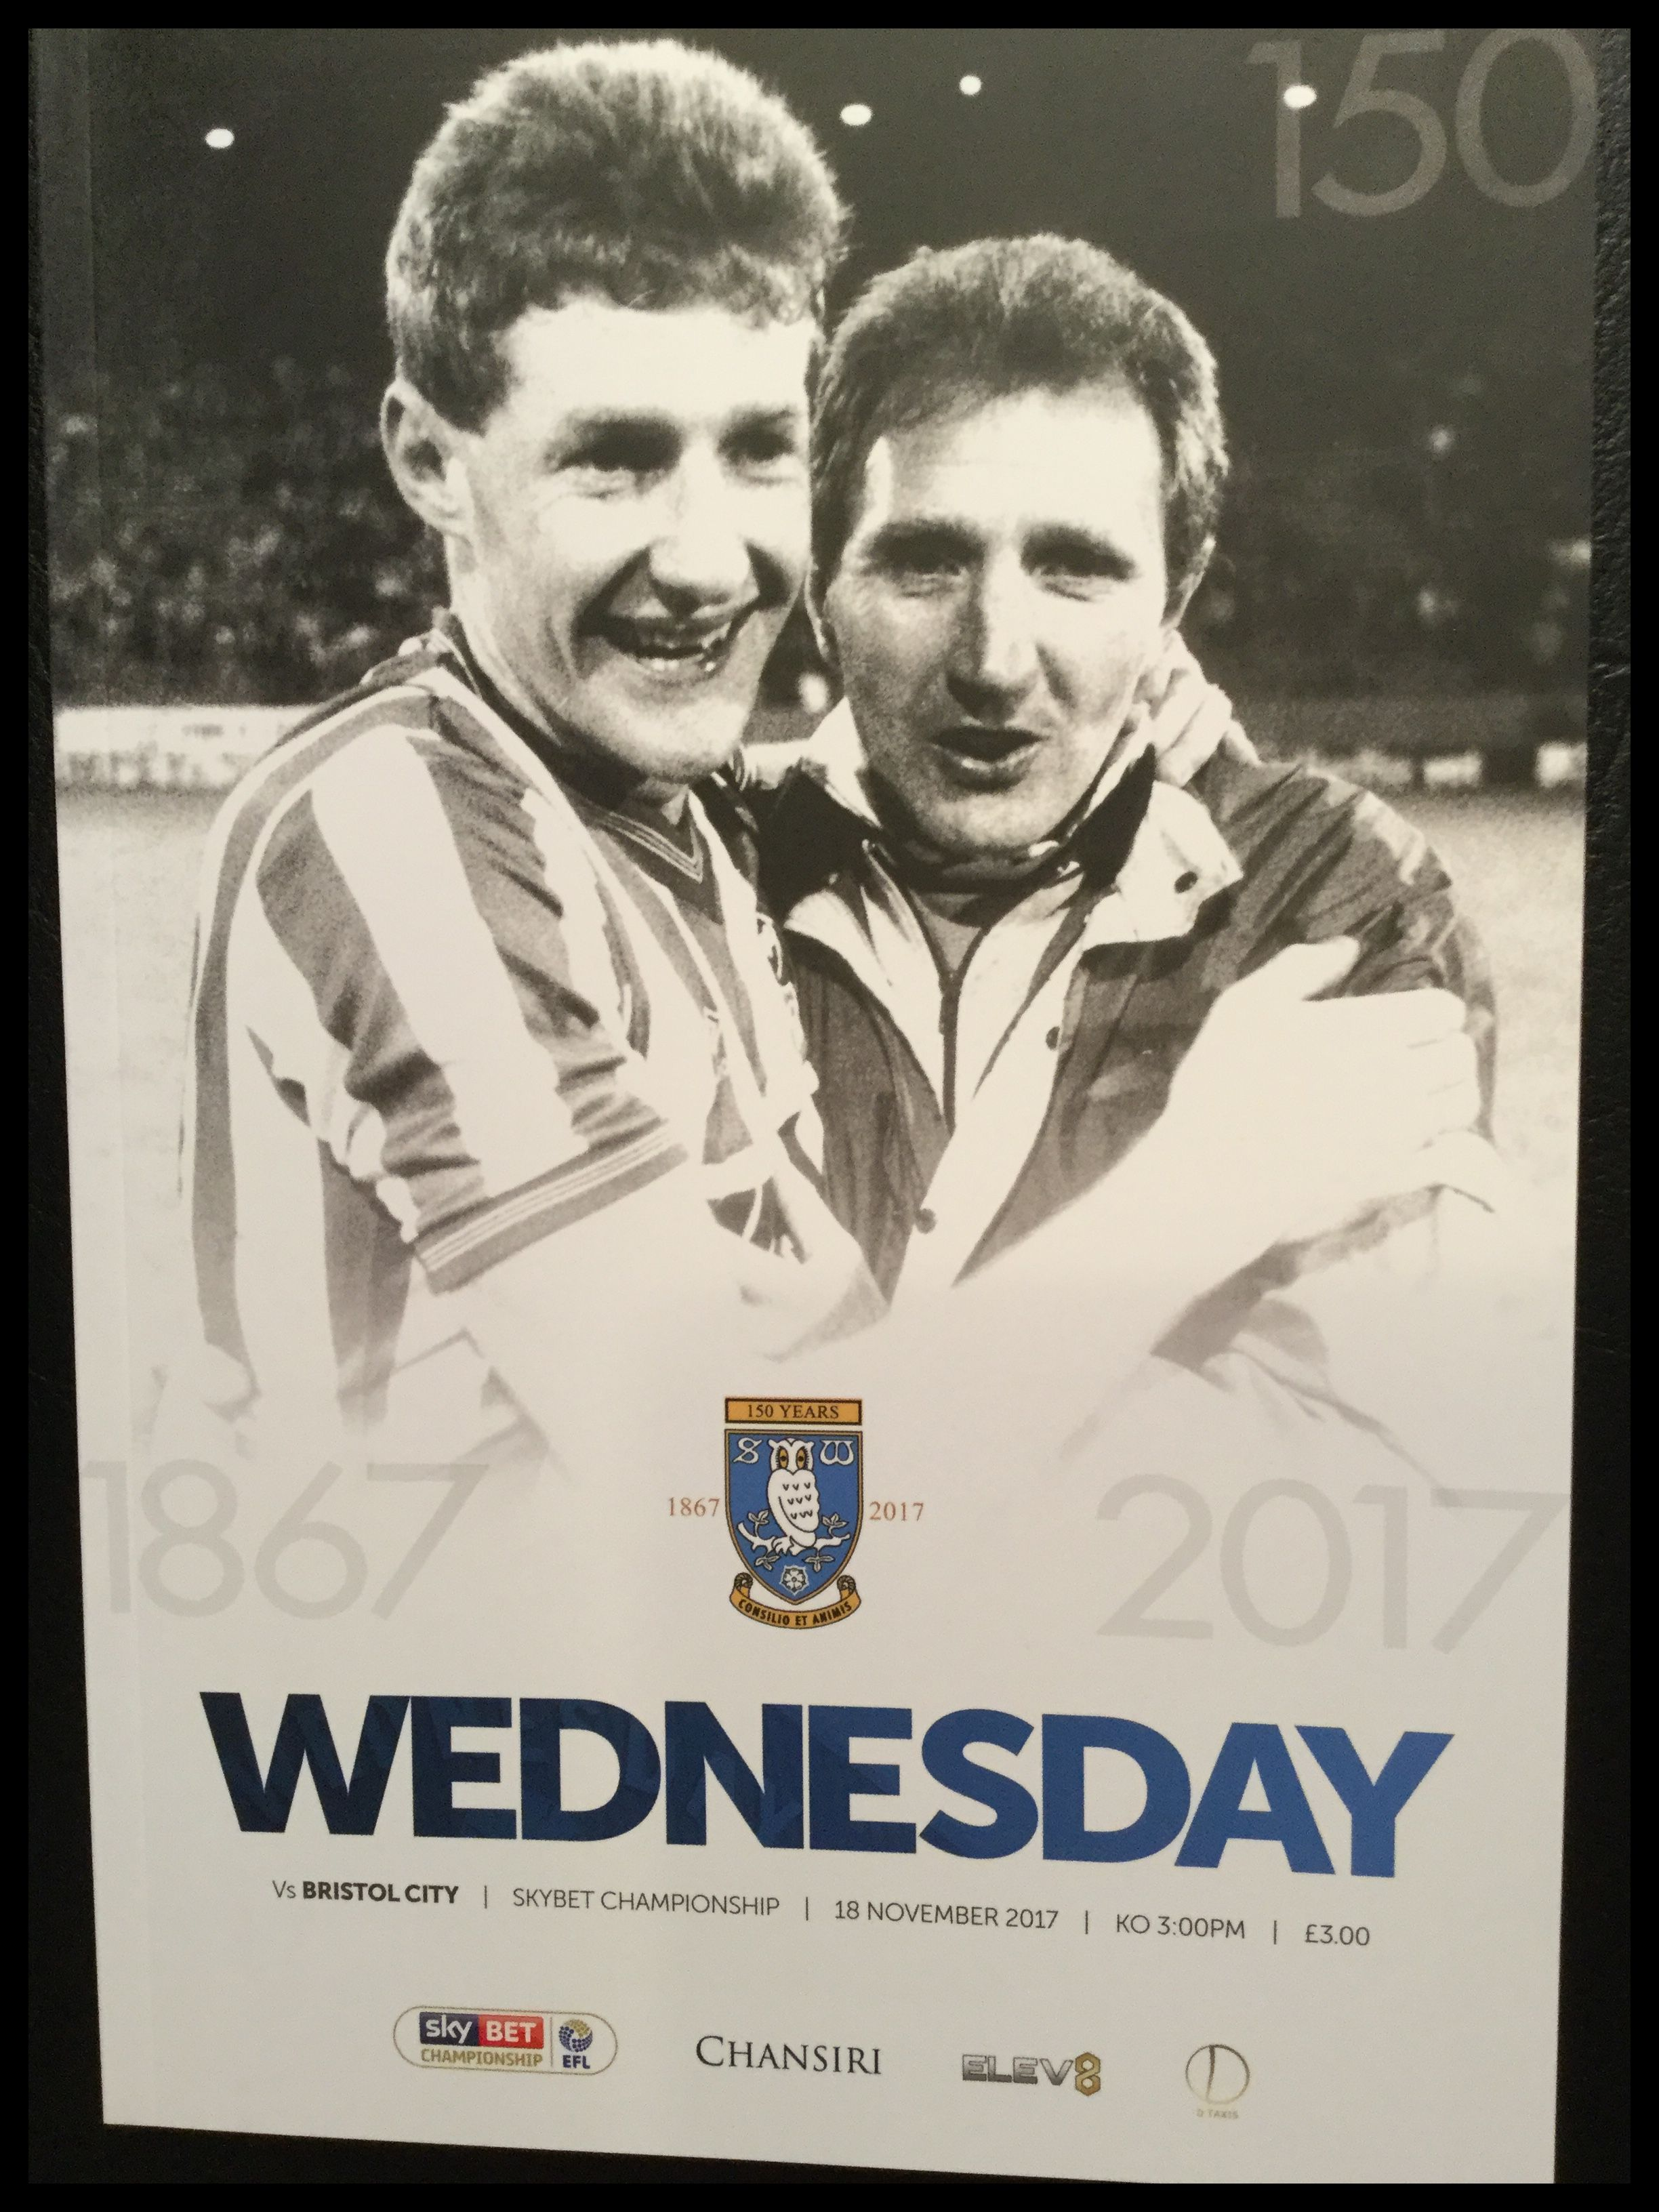 Sheffield Wednesday v Bristol City 18-11-17 Programme